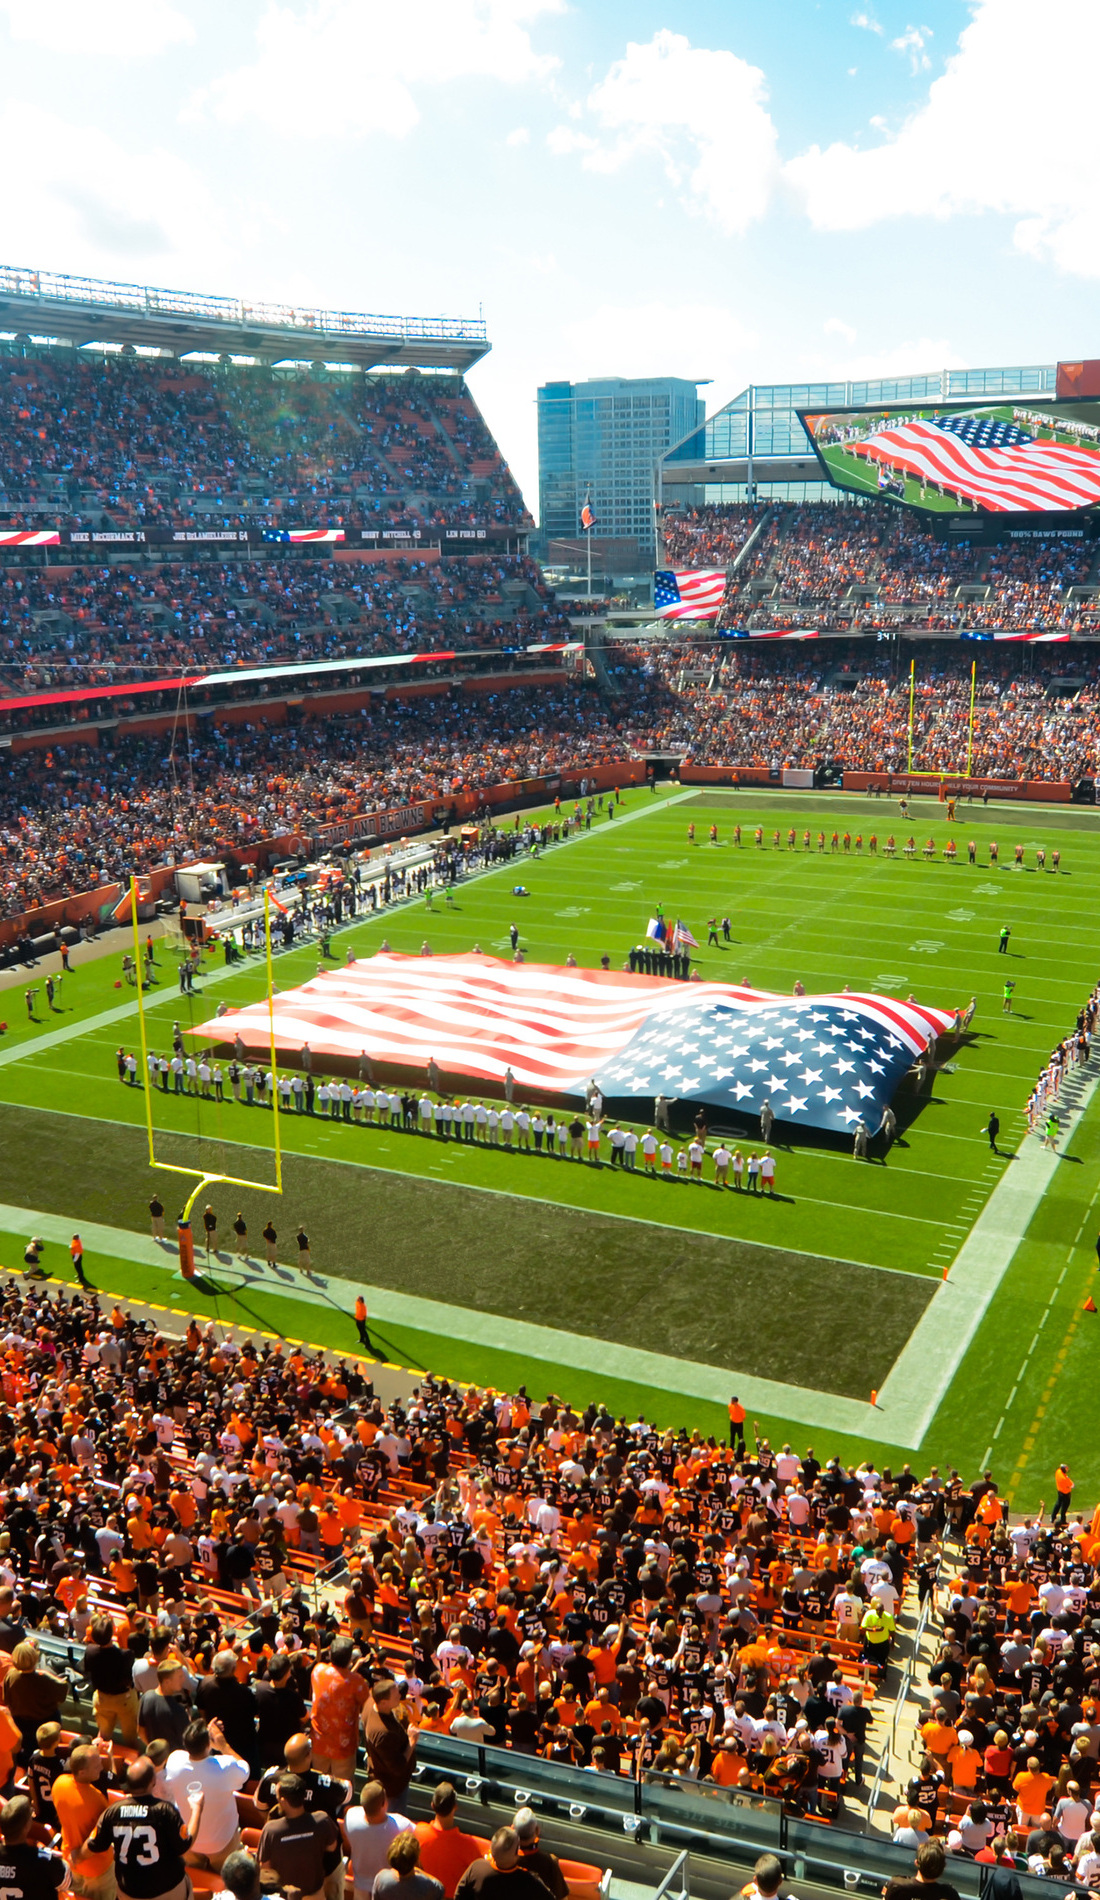 A Cleveland Browns live event